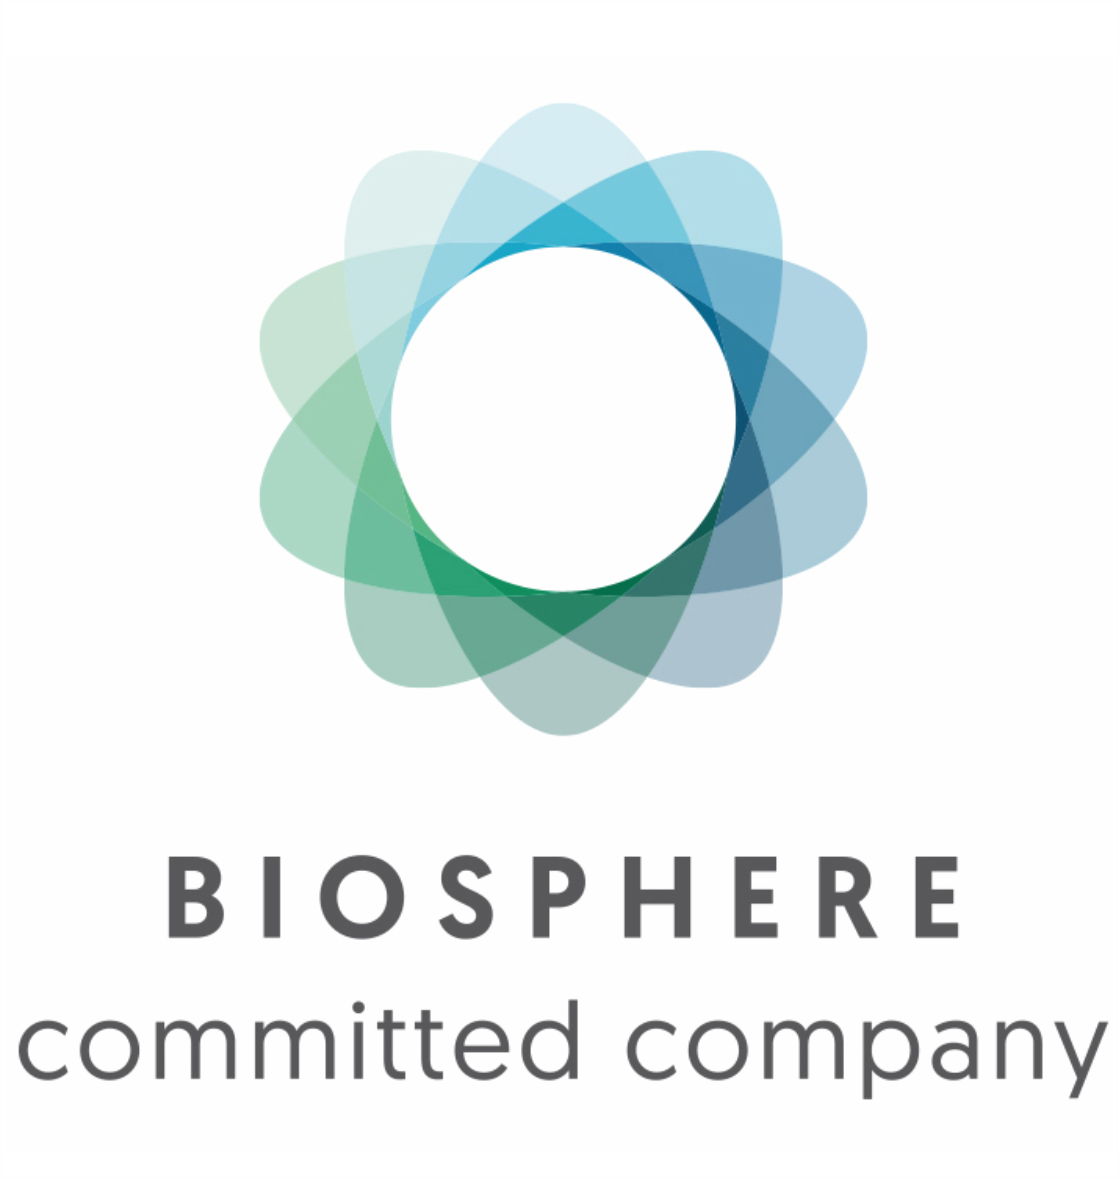 biosphere committed company